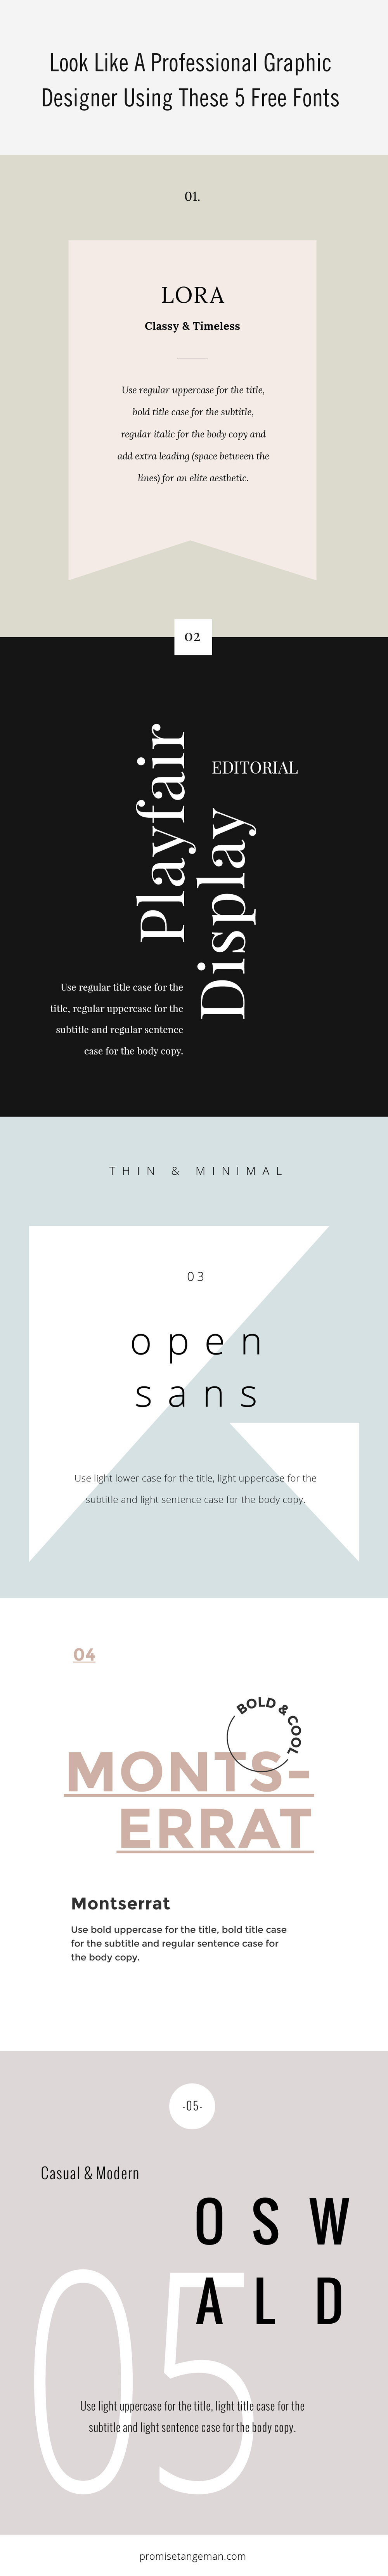 look like a graphic designer using these 5 free fonts u2014 promise